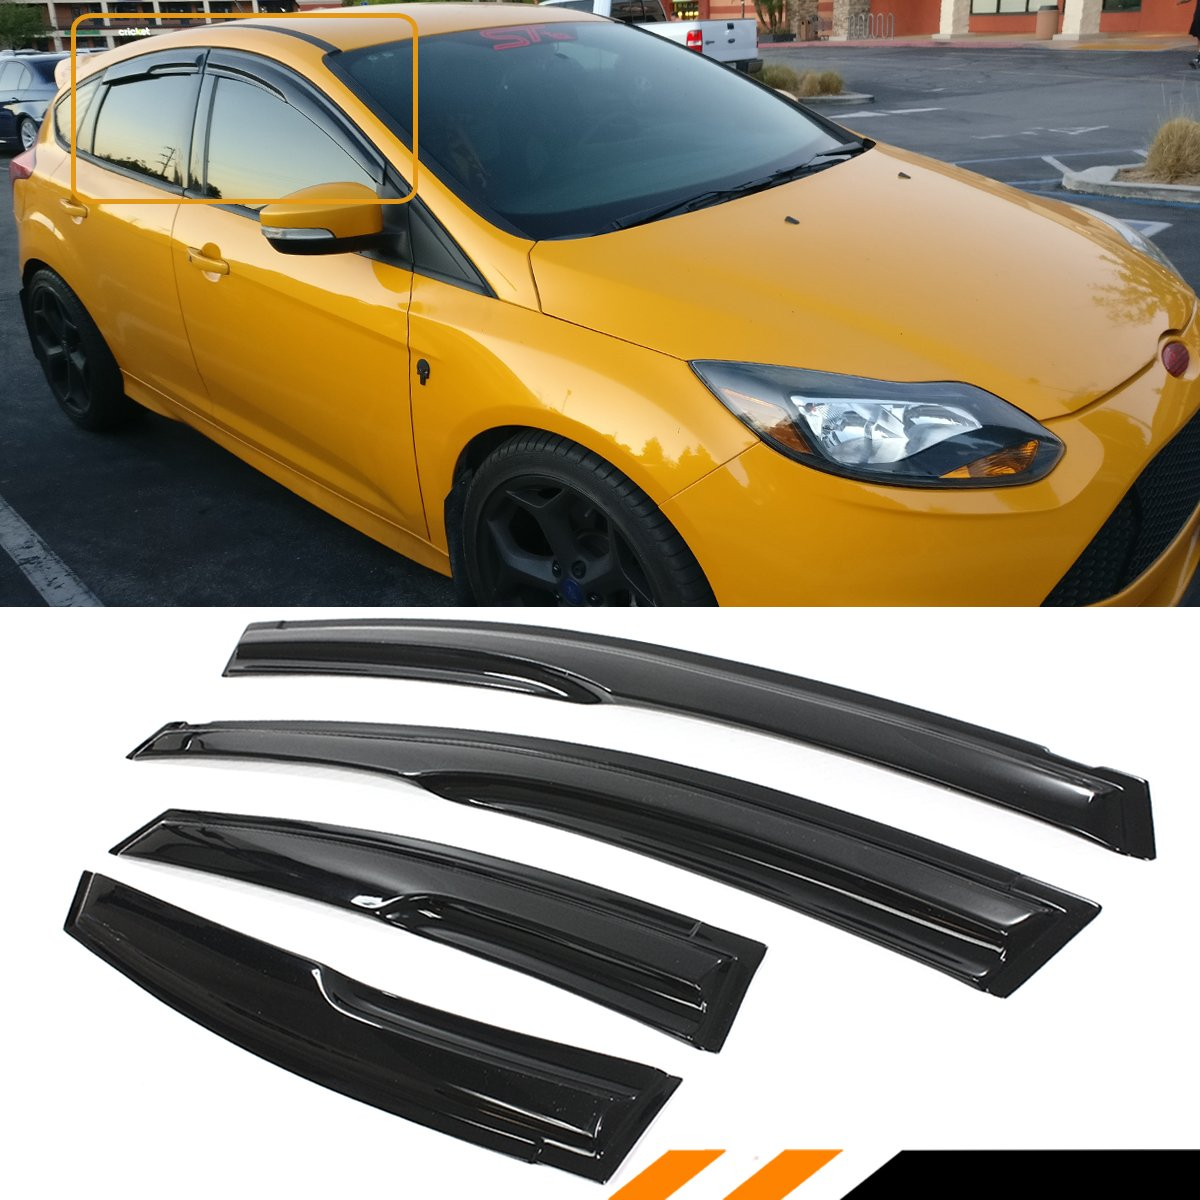 Cuztom Tuning 3d Style Smoke Tinted Window Visor Shade Rain Guard 2012 Ford Focus Windows For 2009 2018